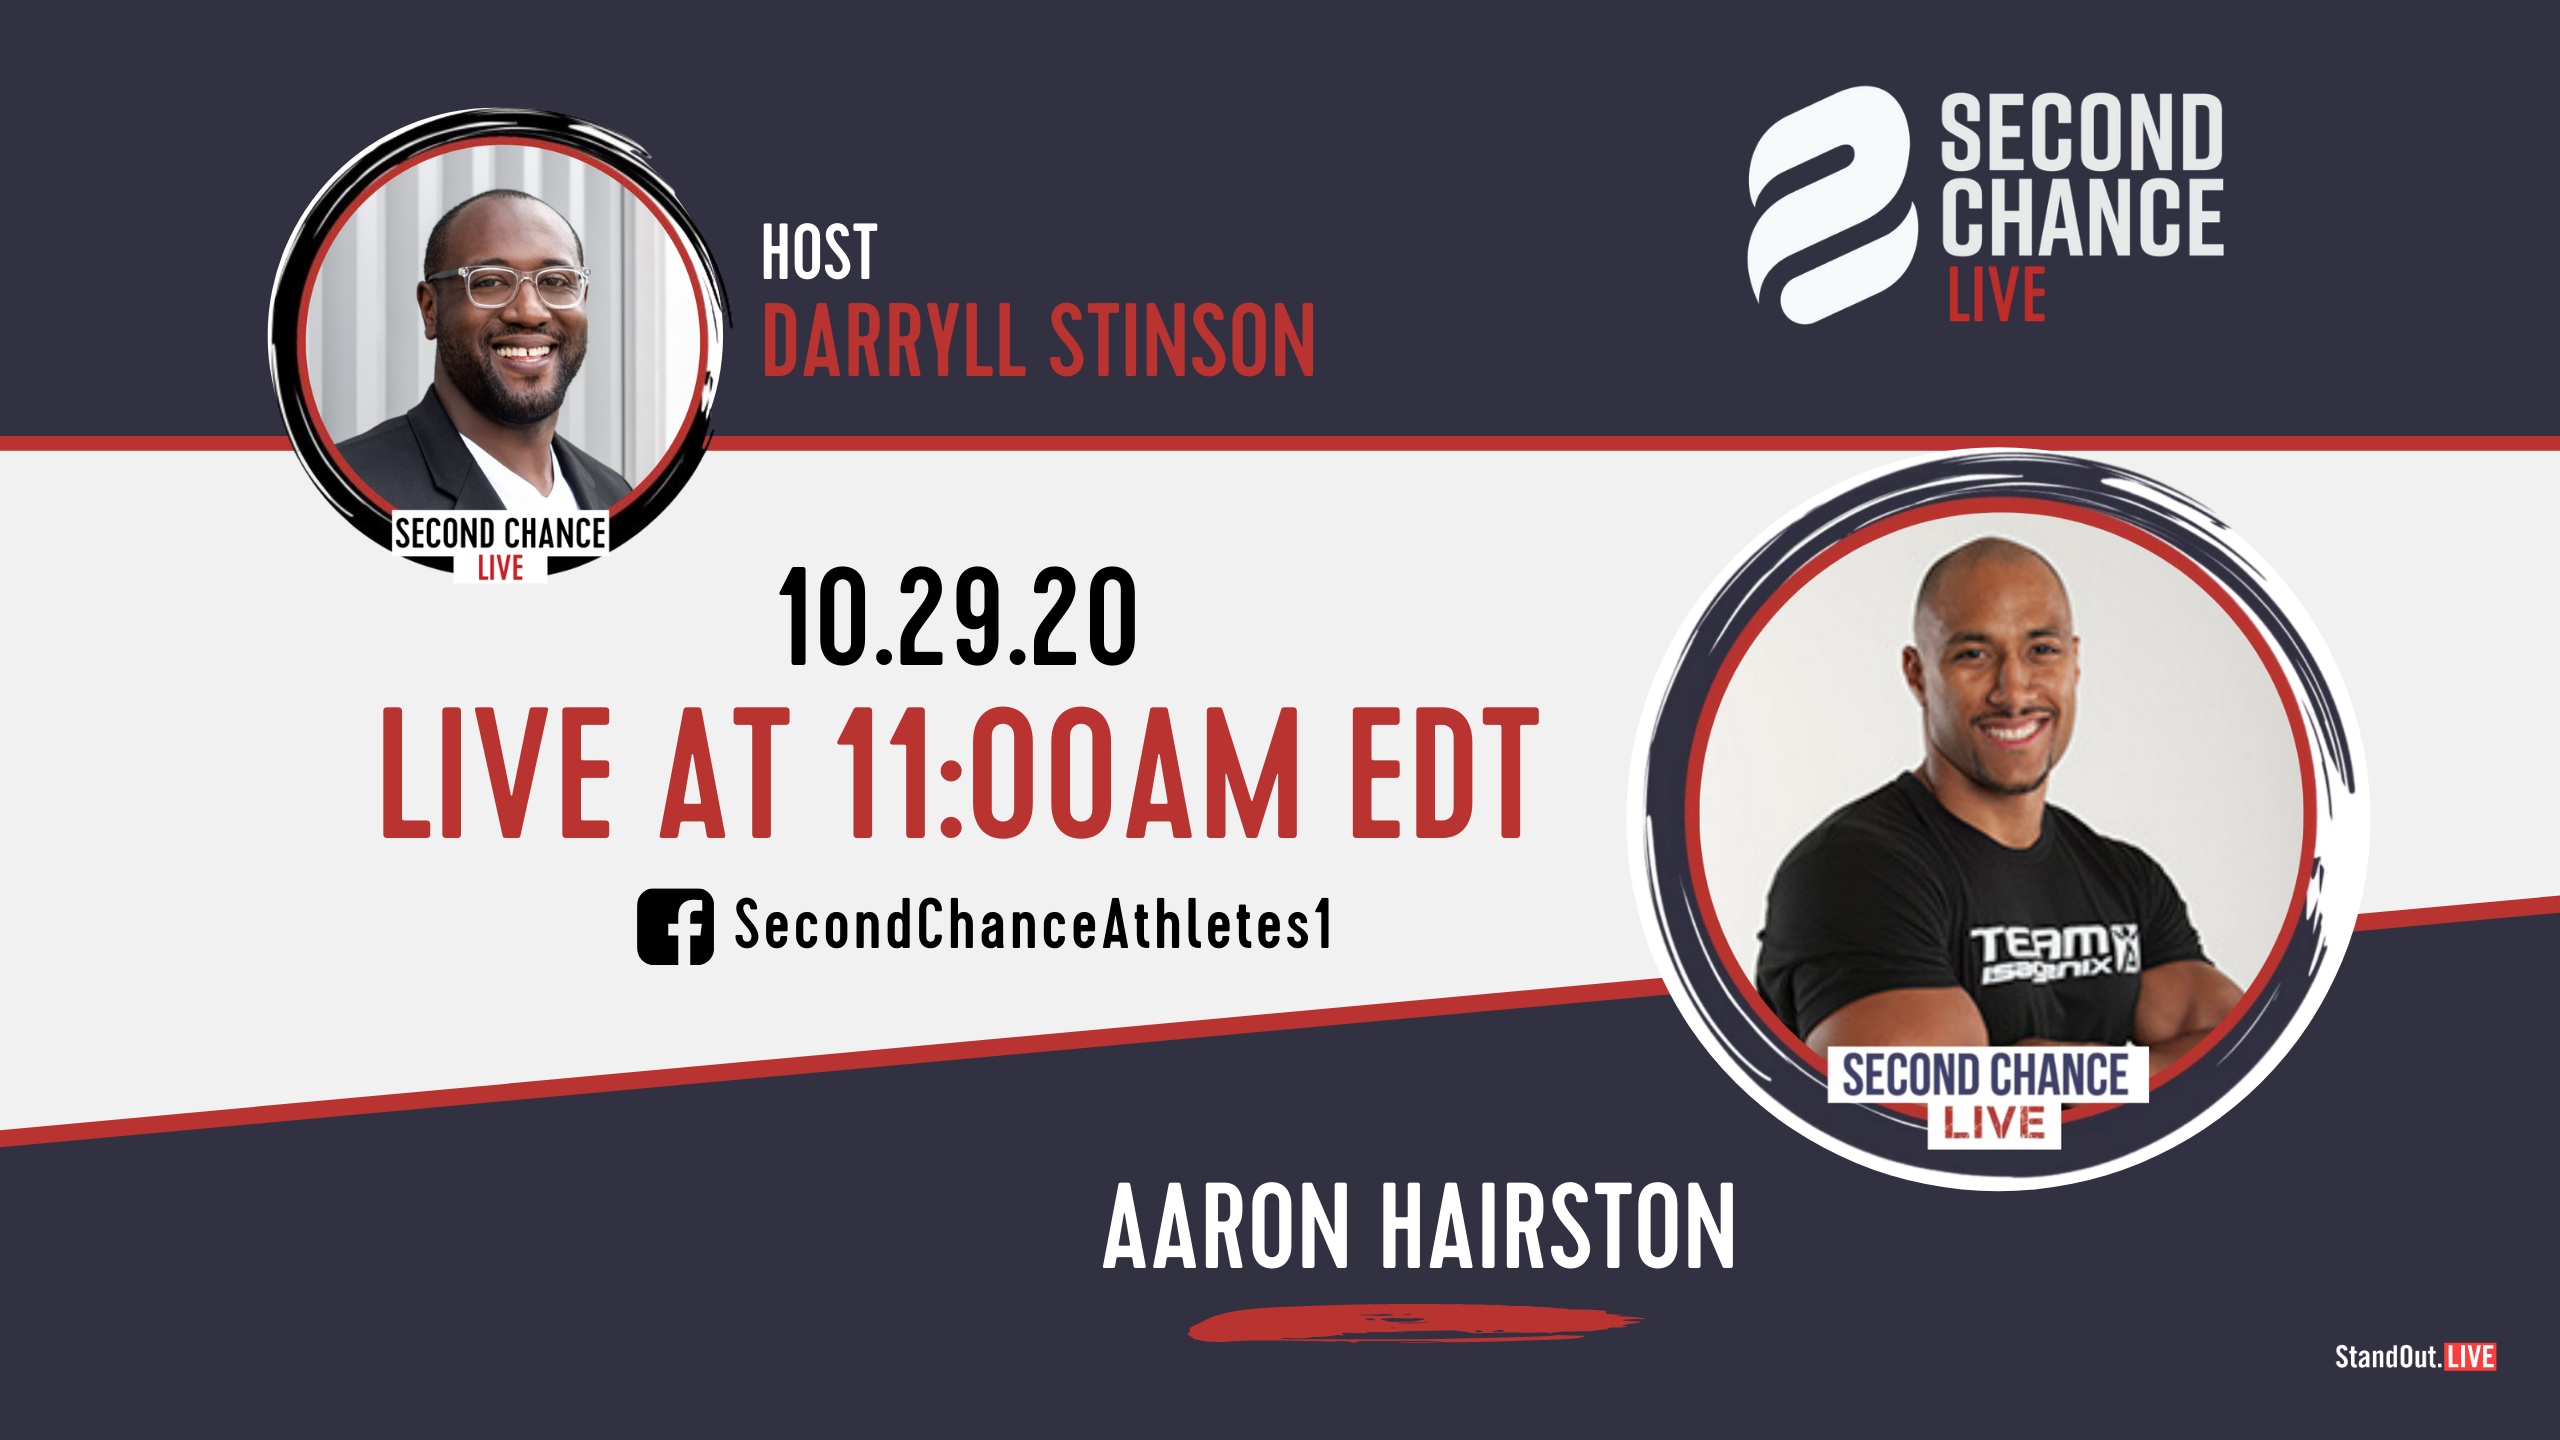 Second Chance LIVE -with Aaron Hairston